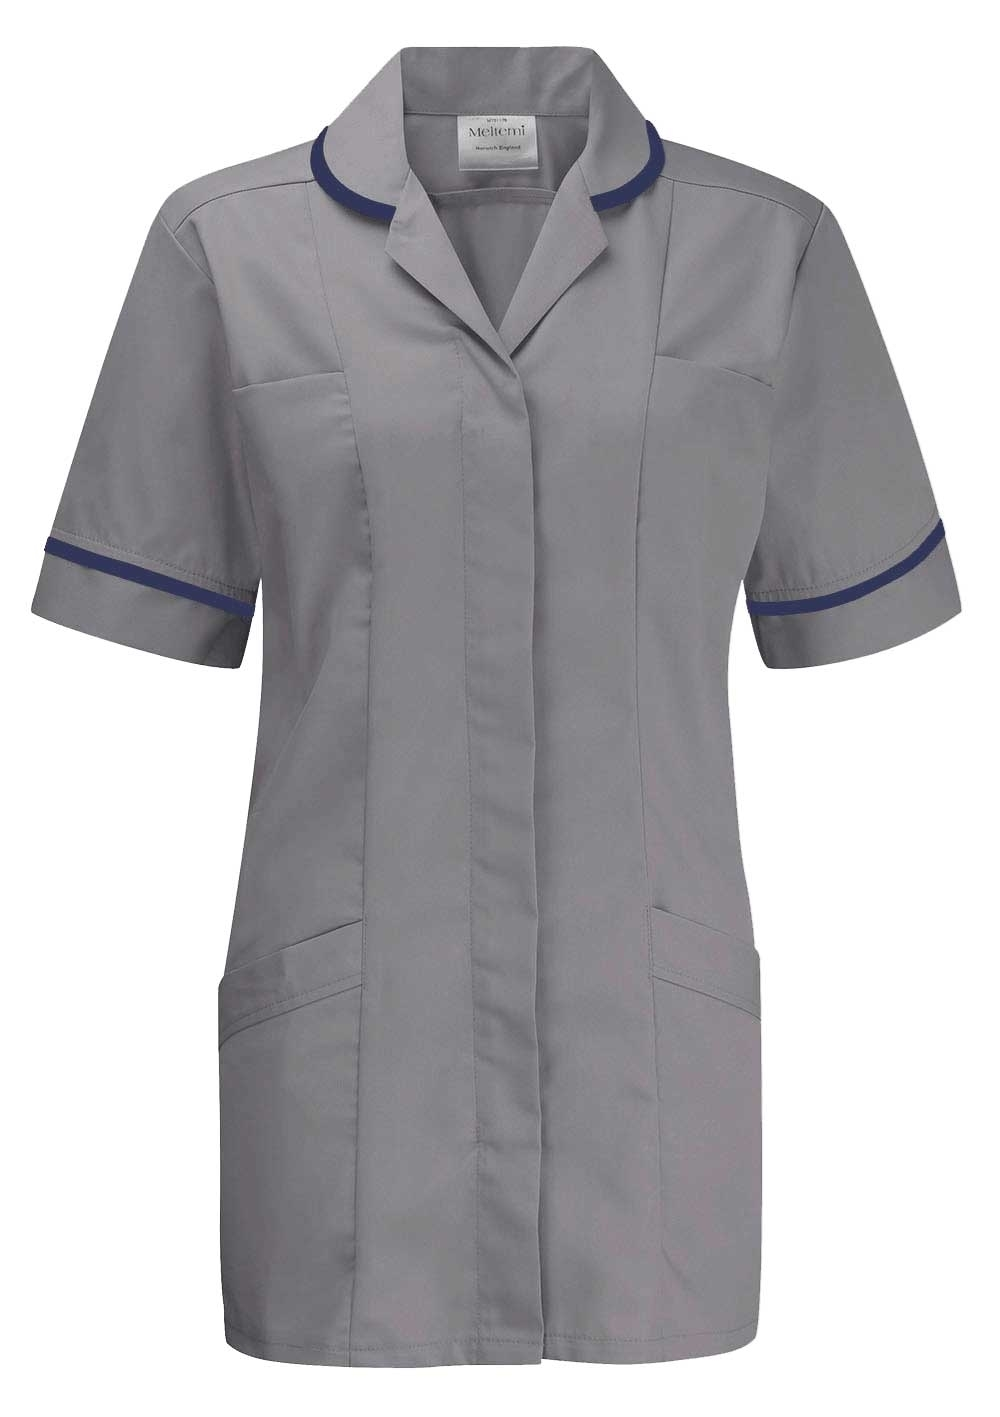 Picture of Advantage Tunic - Hospital Grey/Navy